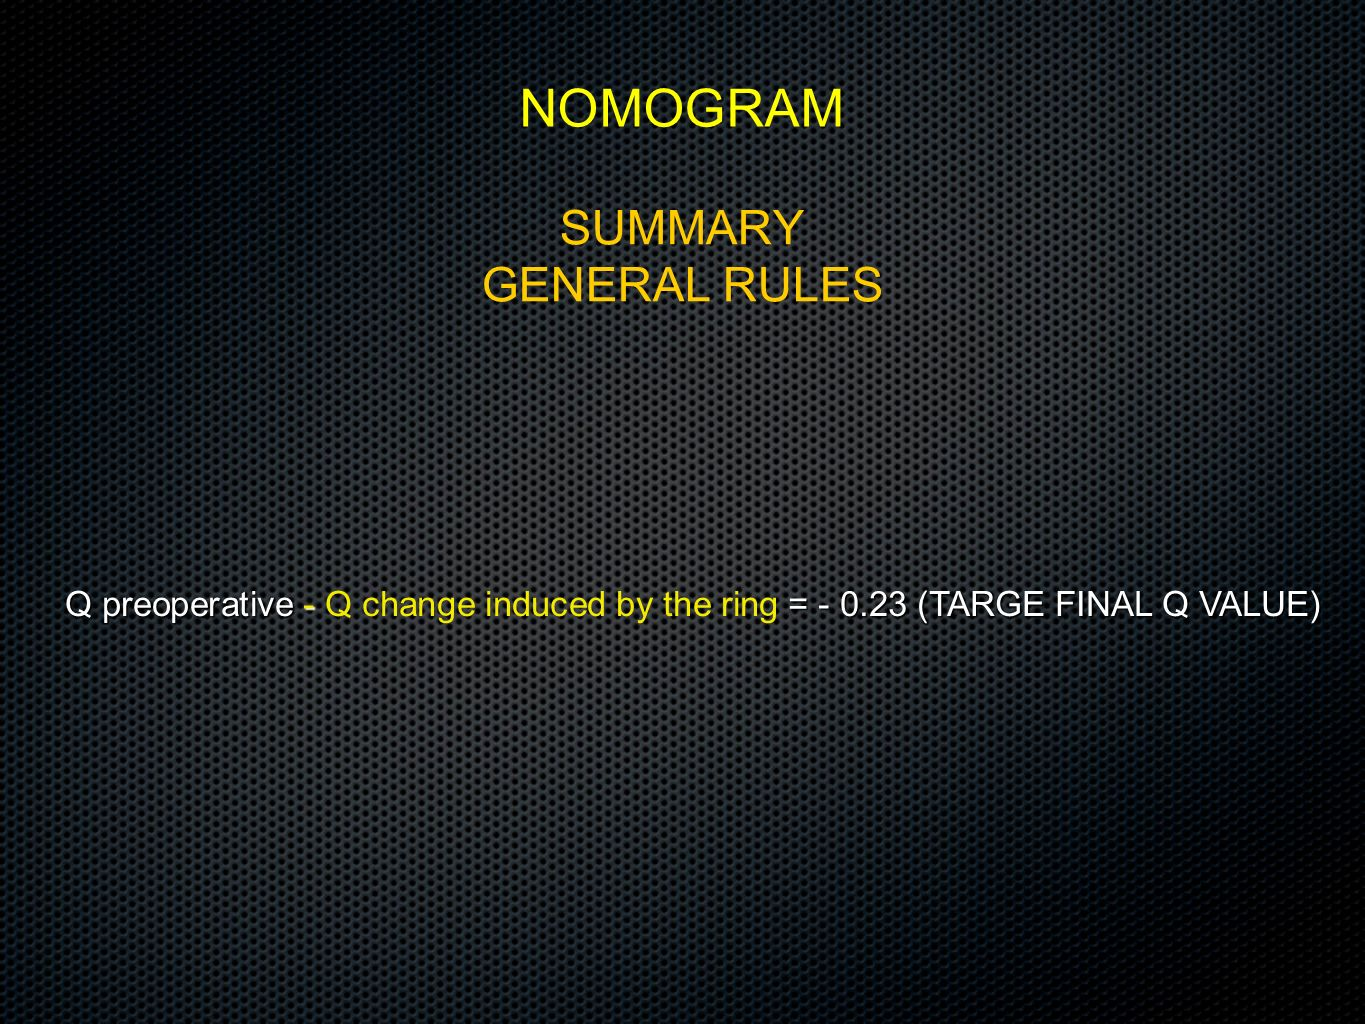 SUMMARY GENERAL RULES NOMOGRAM Q preoperative - = - 0.23 (TARGE FINAL Q VALUE) Q preoperative - Q change induced by the ring = - 0.23 (TARGE FINAL Q V